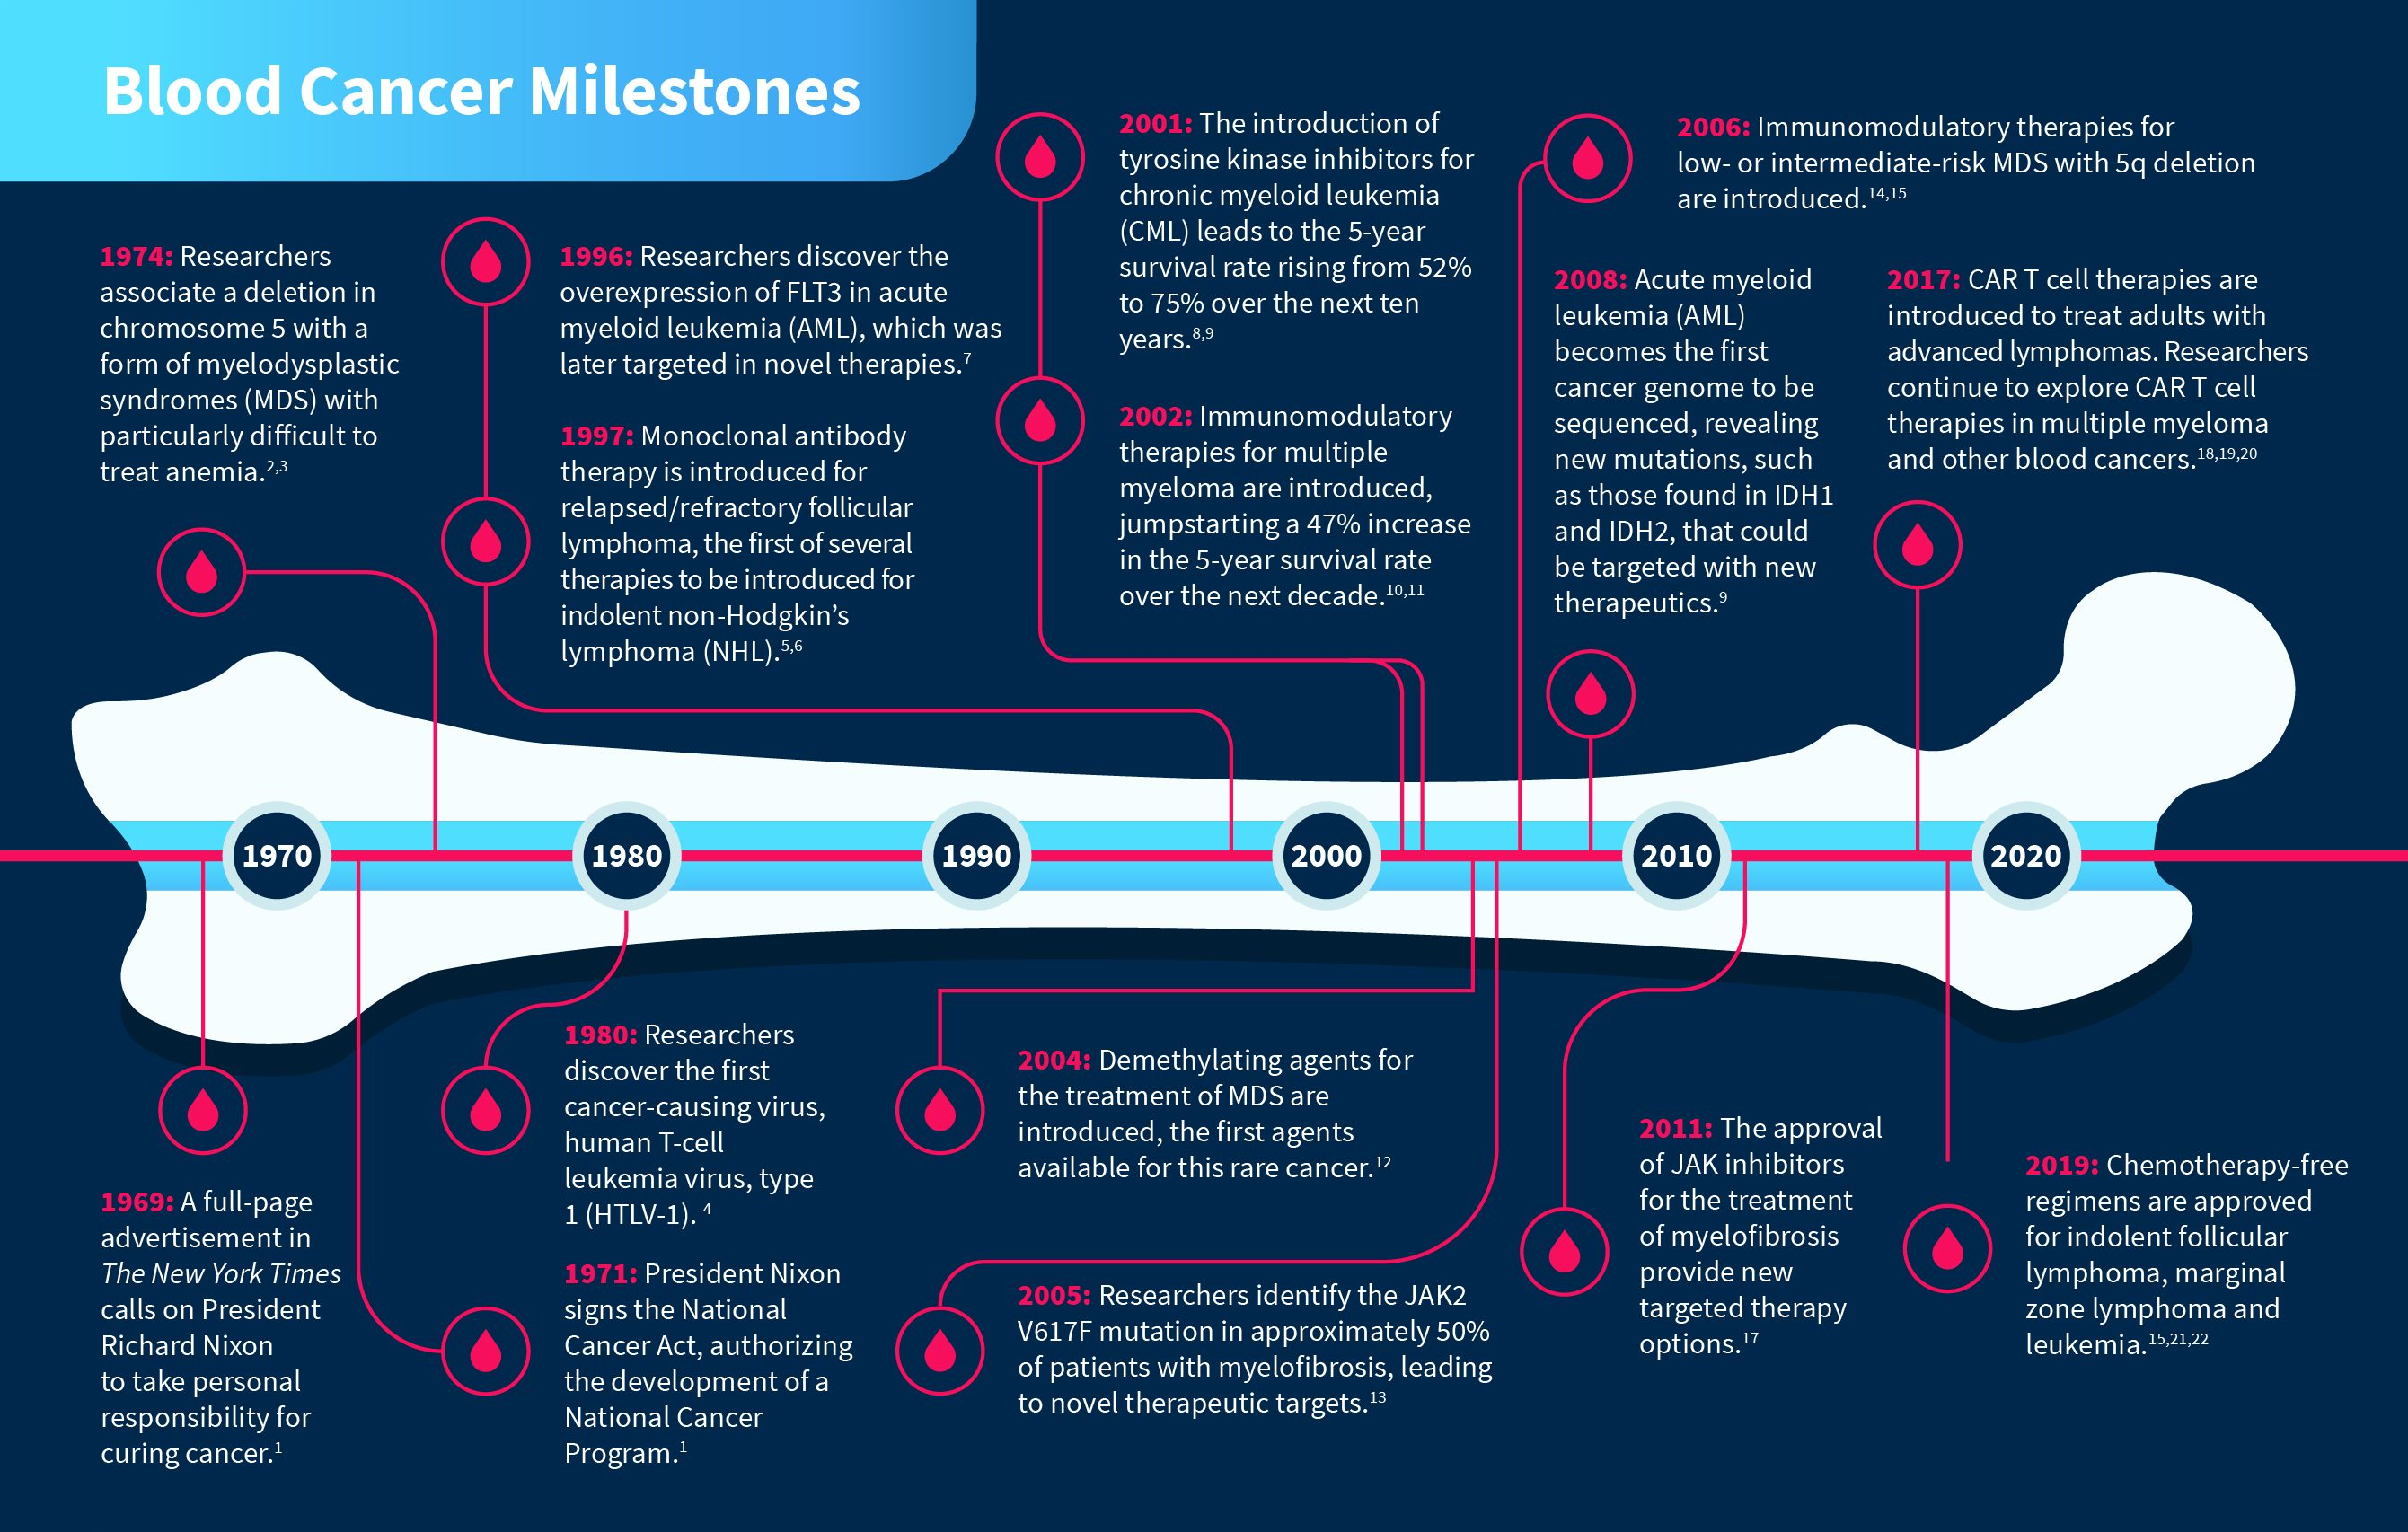 Blood Cancer Milestones